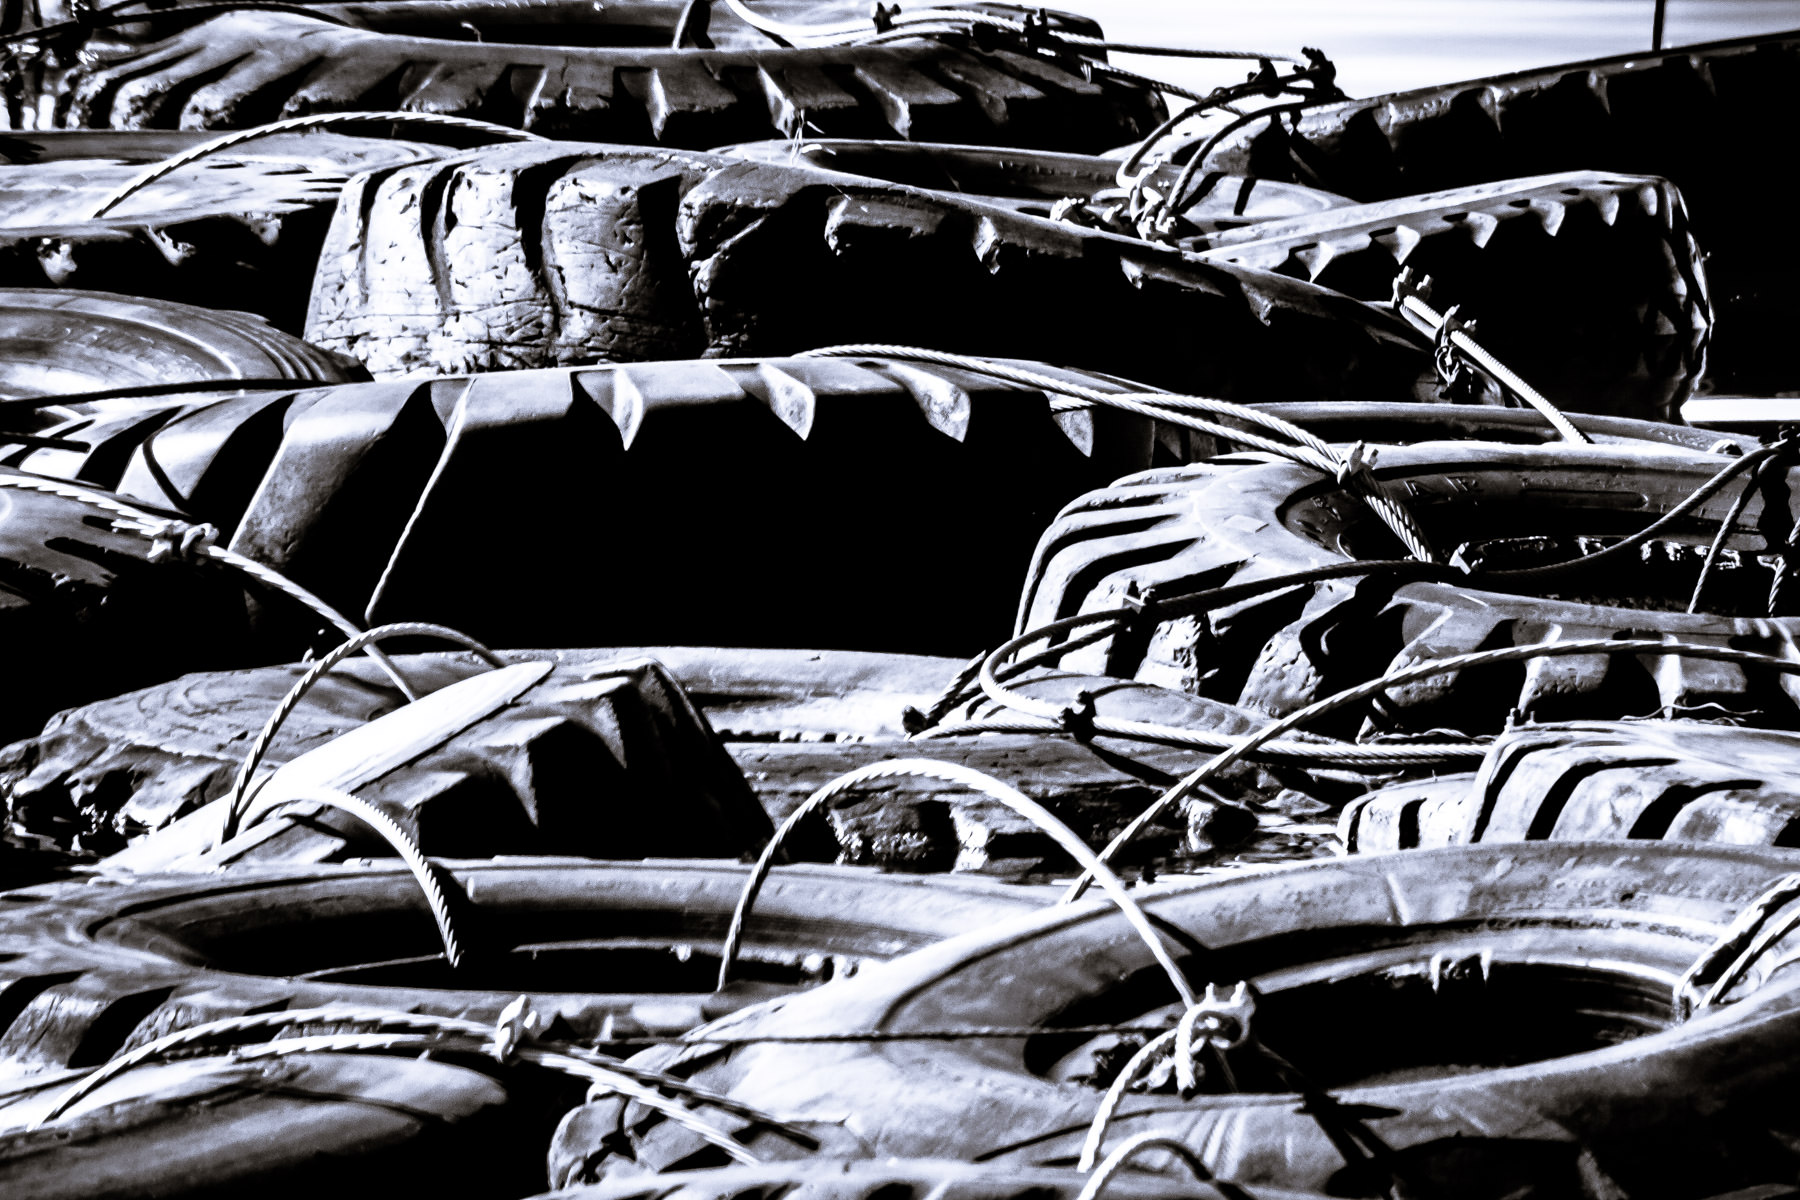 Discarded industrial tires cabled together and used as jetties at a marina on Joe Pool Lake, just outside of Dallas.